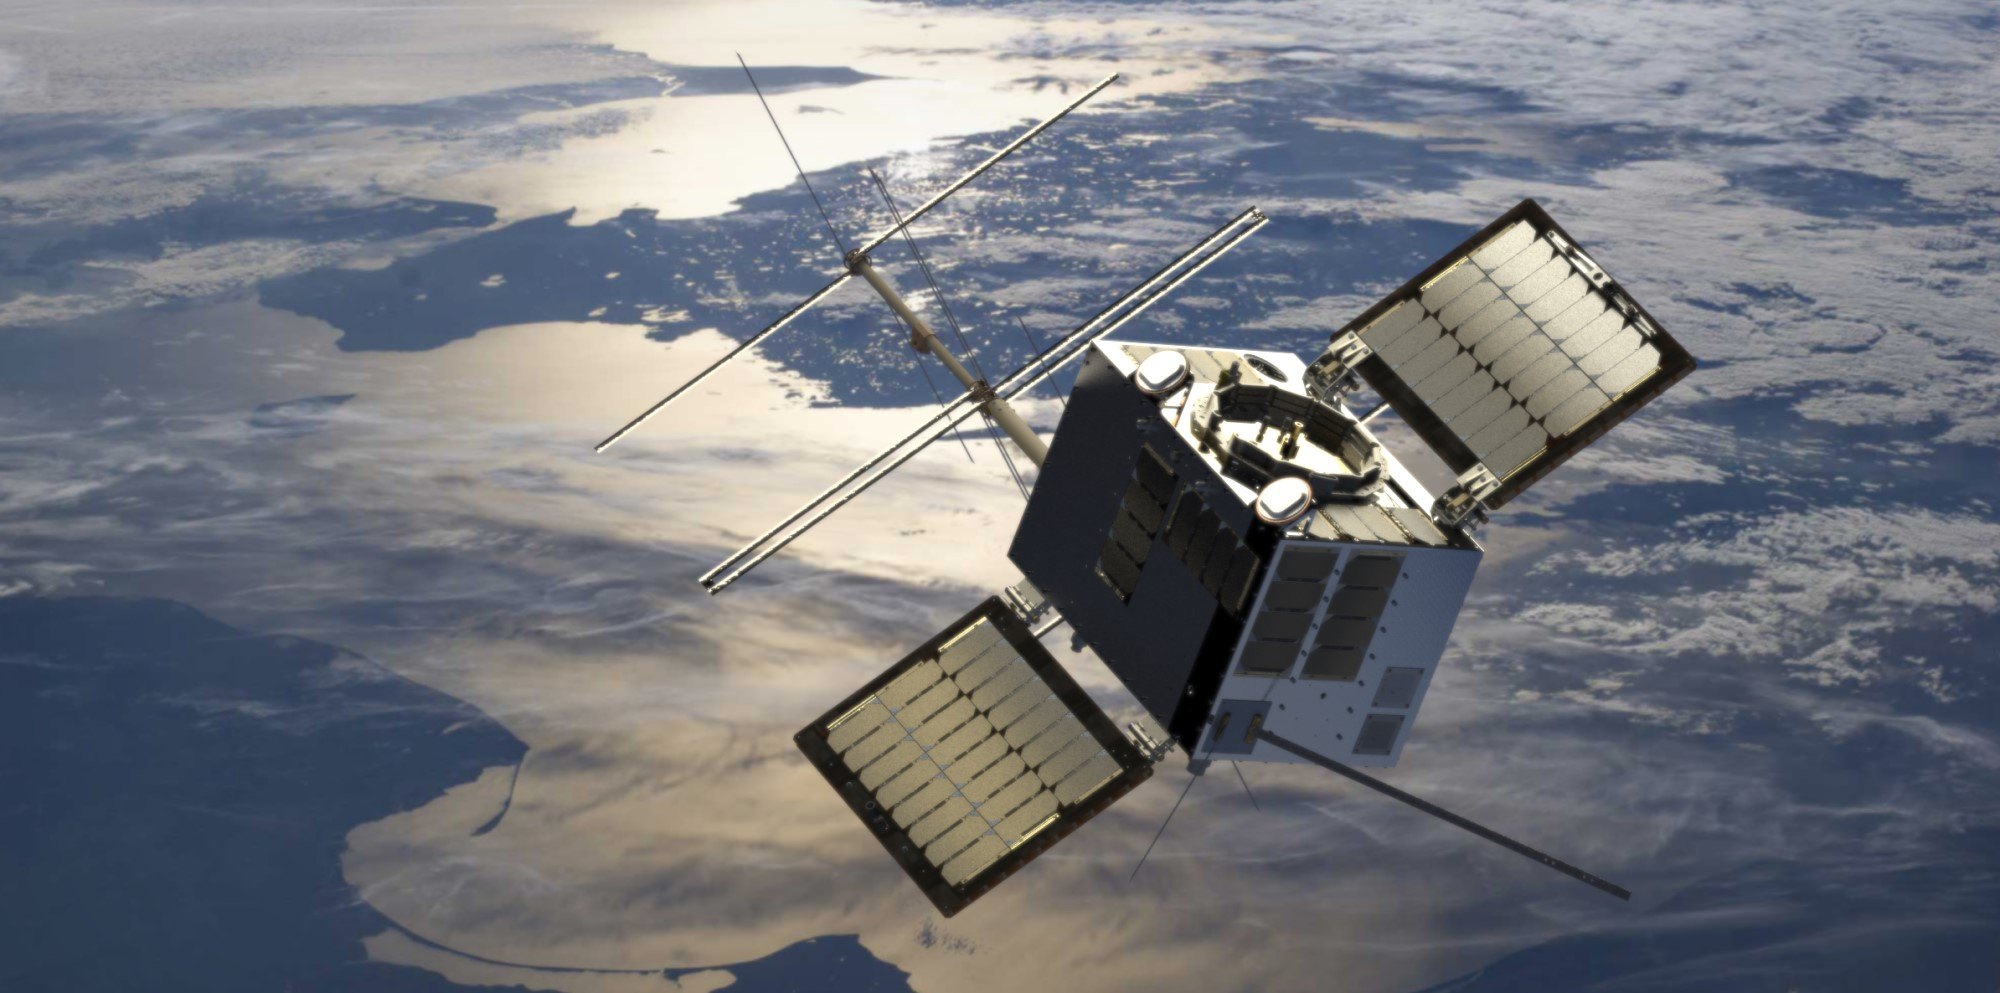 NorSat-TD is a new Norwegian satellite for demonstrating technology in space. Illustration: Space Norway